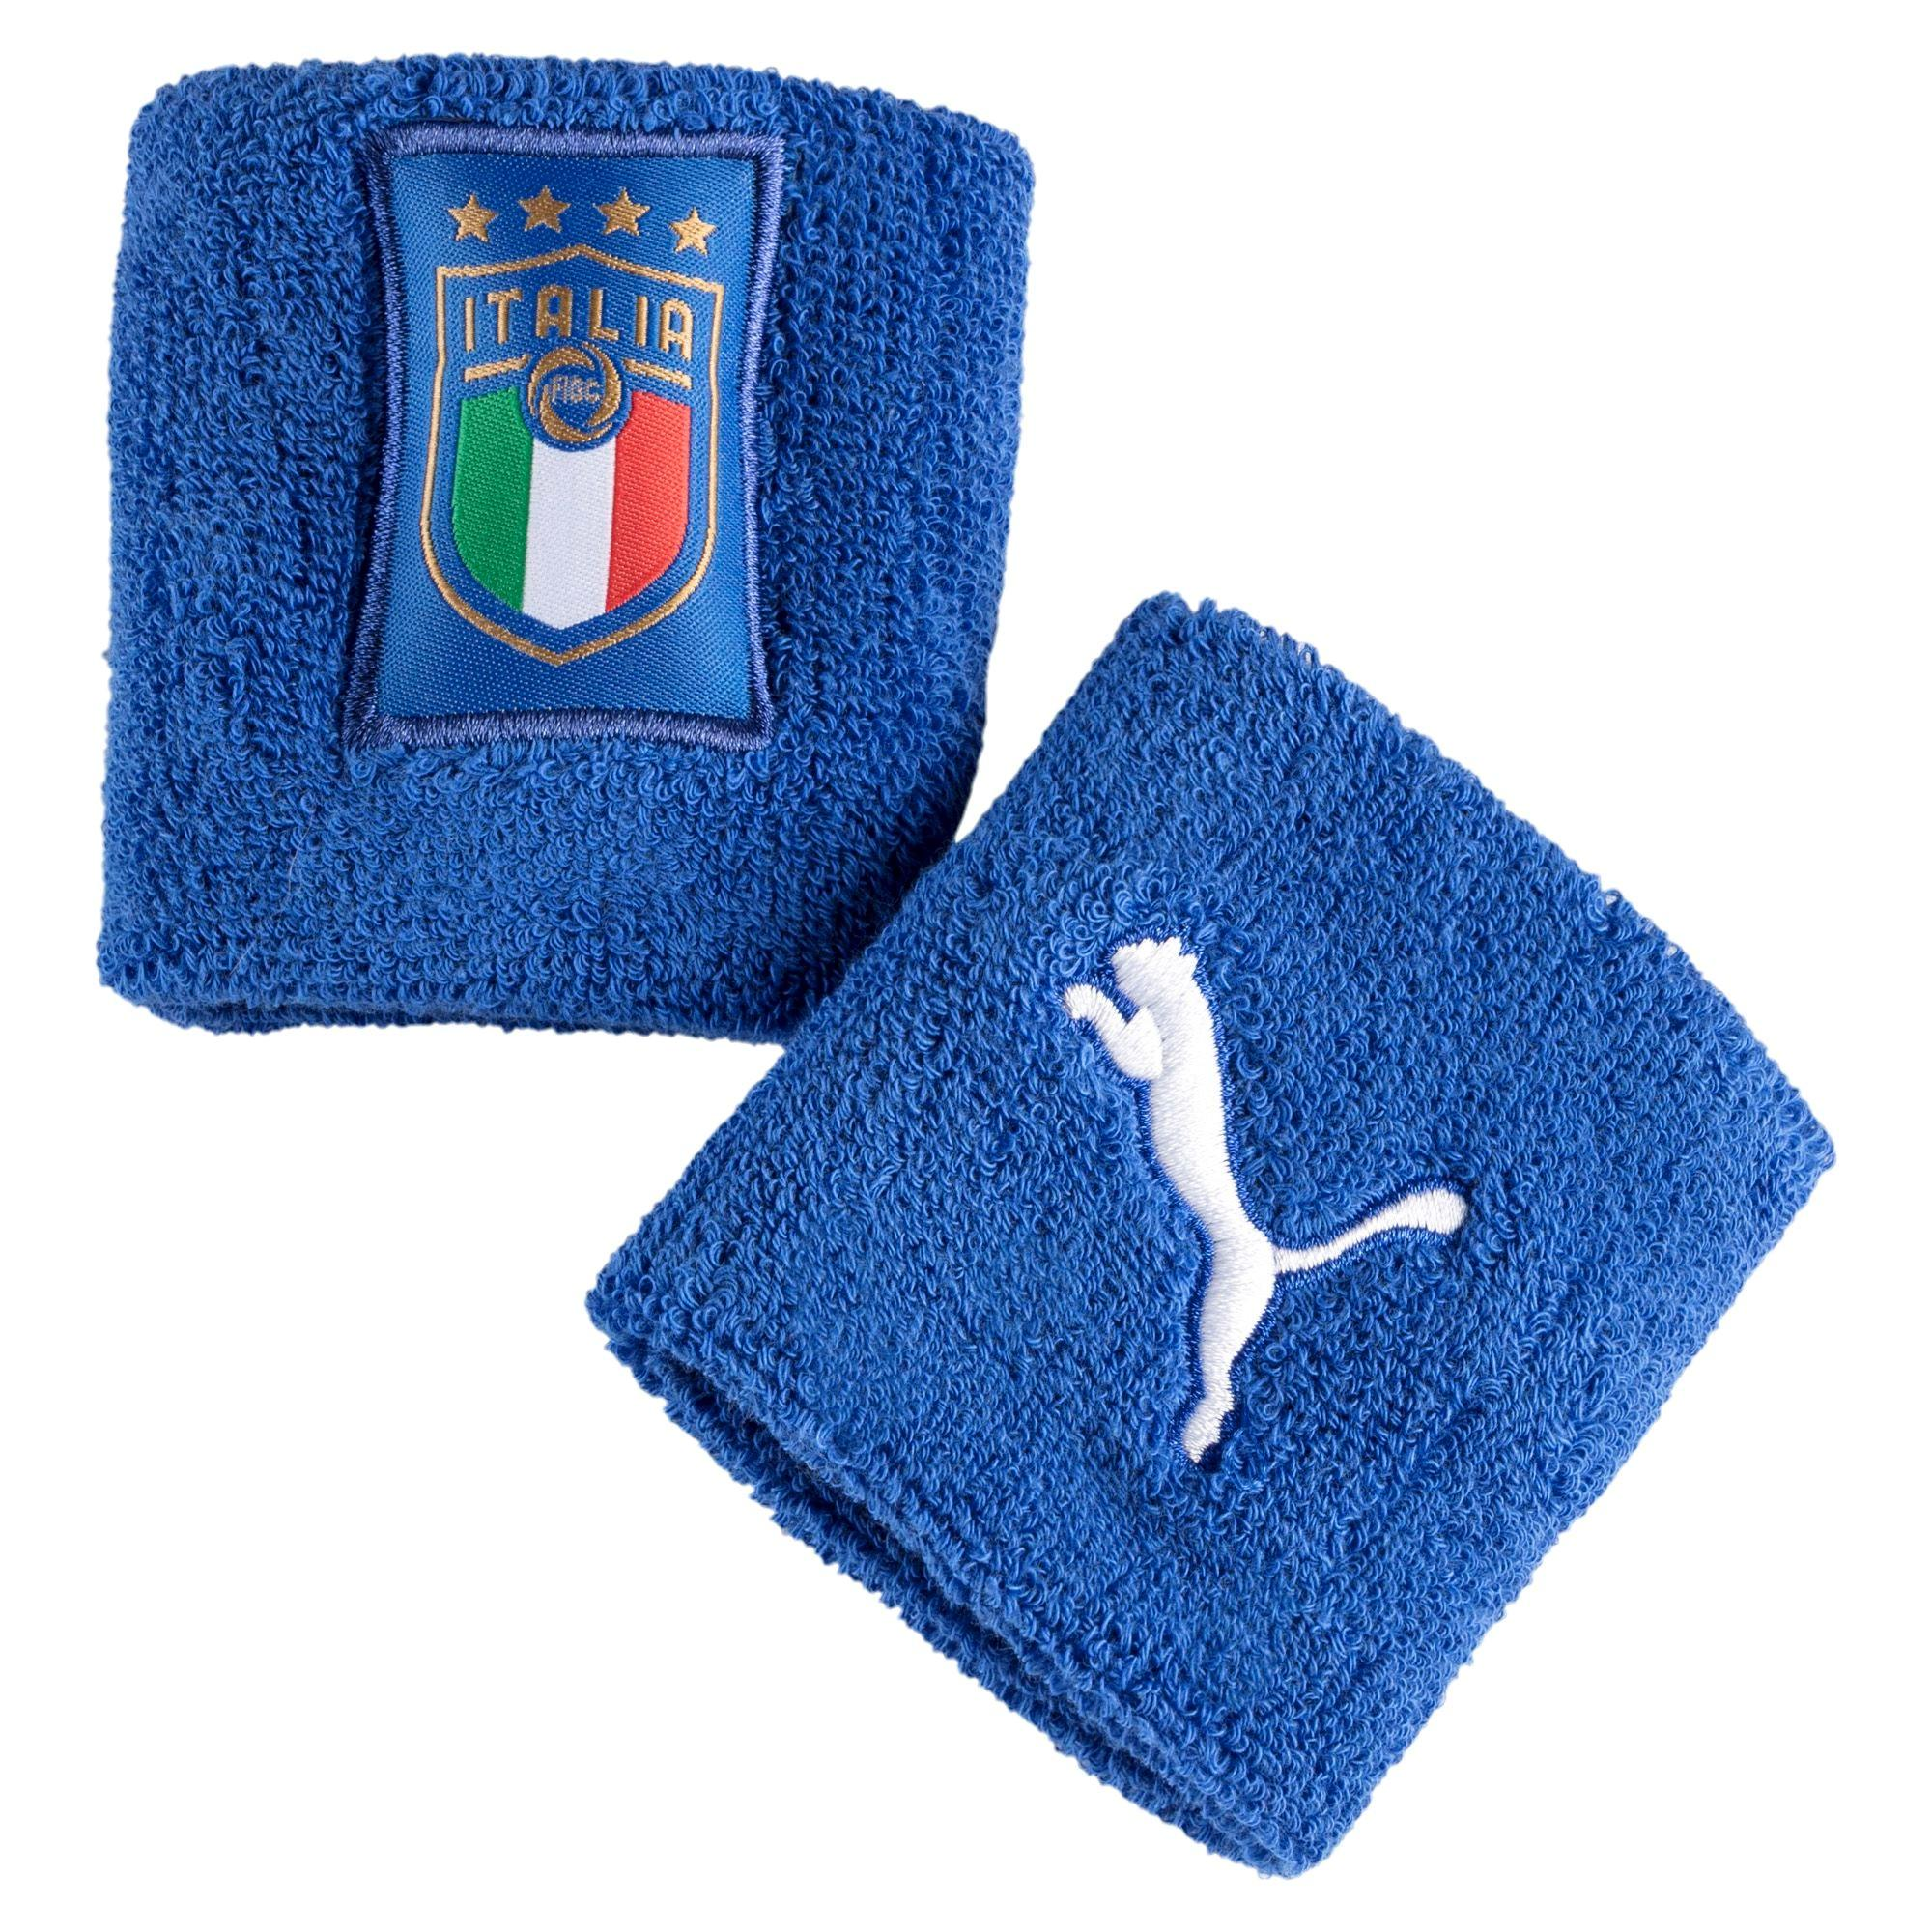 Puma Wristbands Figc Italy